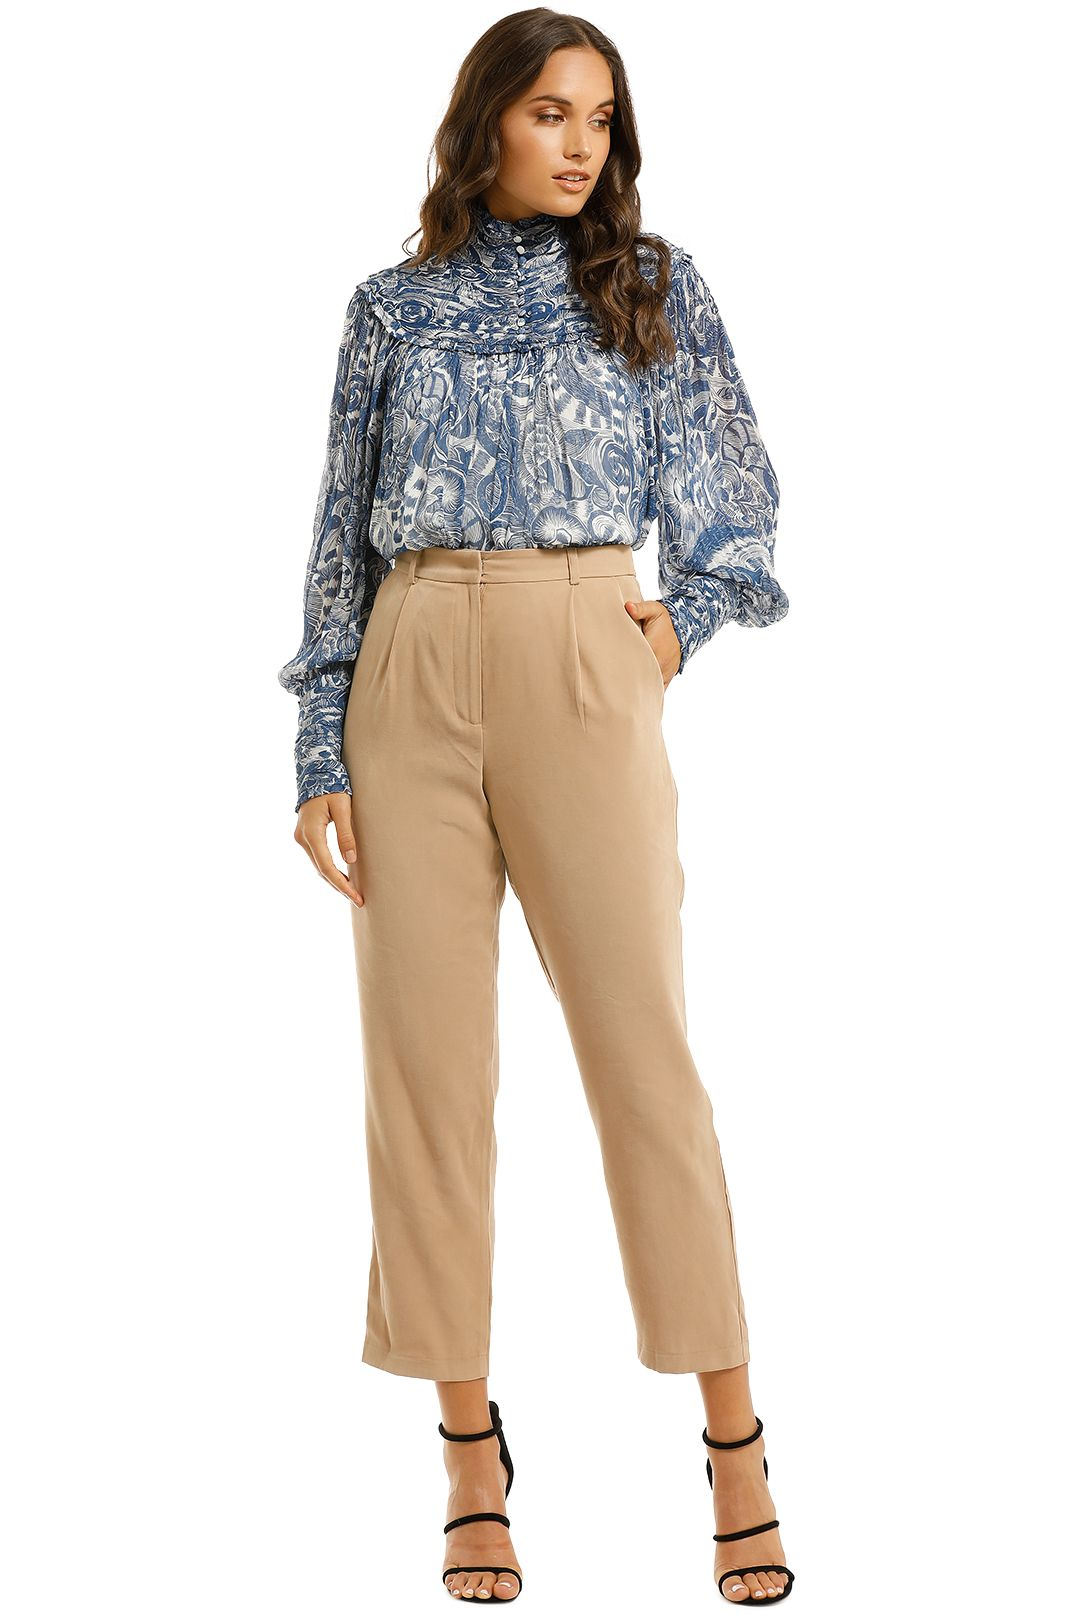 Countr-Road-High-Neck-Blouse-Deep-Blue-Front